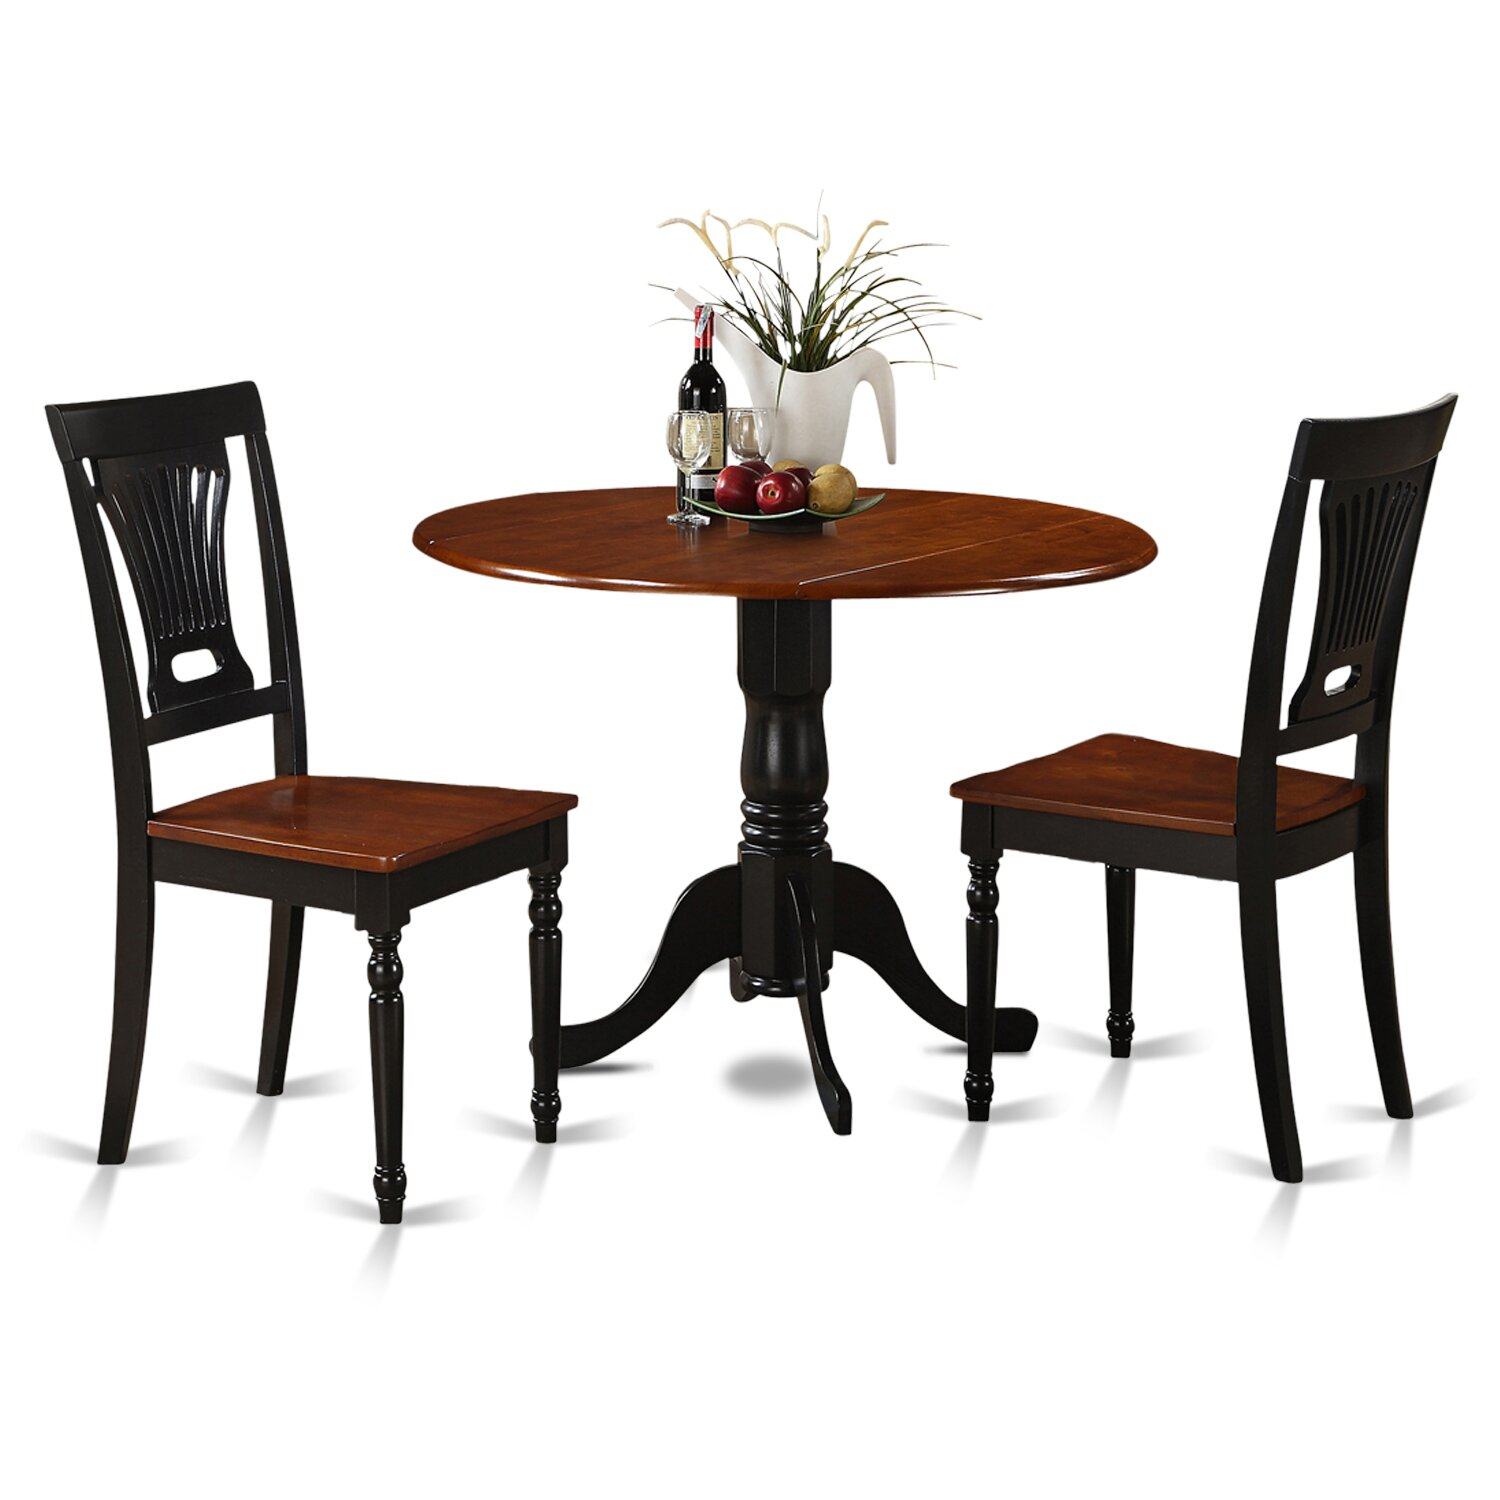 Wooden importers dublin 3 piece dining set reviews wayfair for Kitchen dining sets